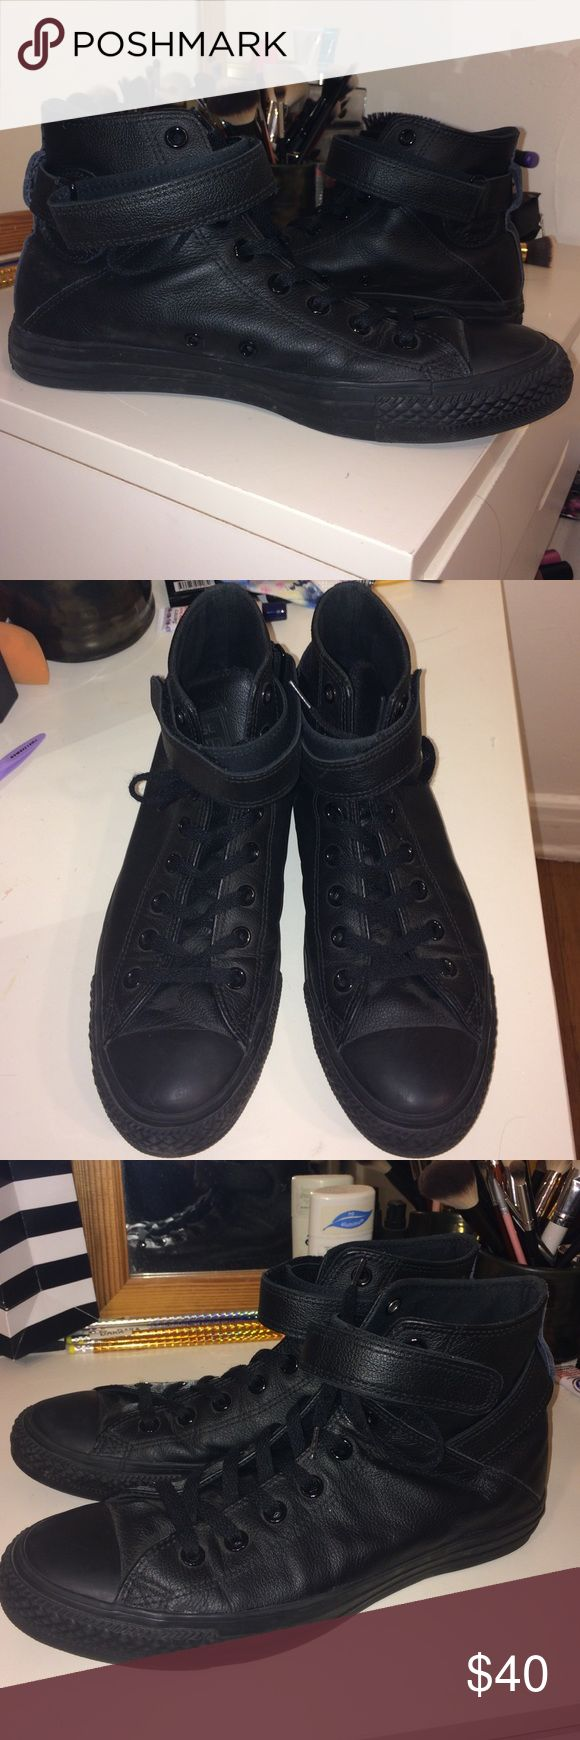 Black leather converse Black leather converse with ankle straps. Size US 10. Brand new. Worn 2 times. Converse Shoes Sneakers